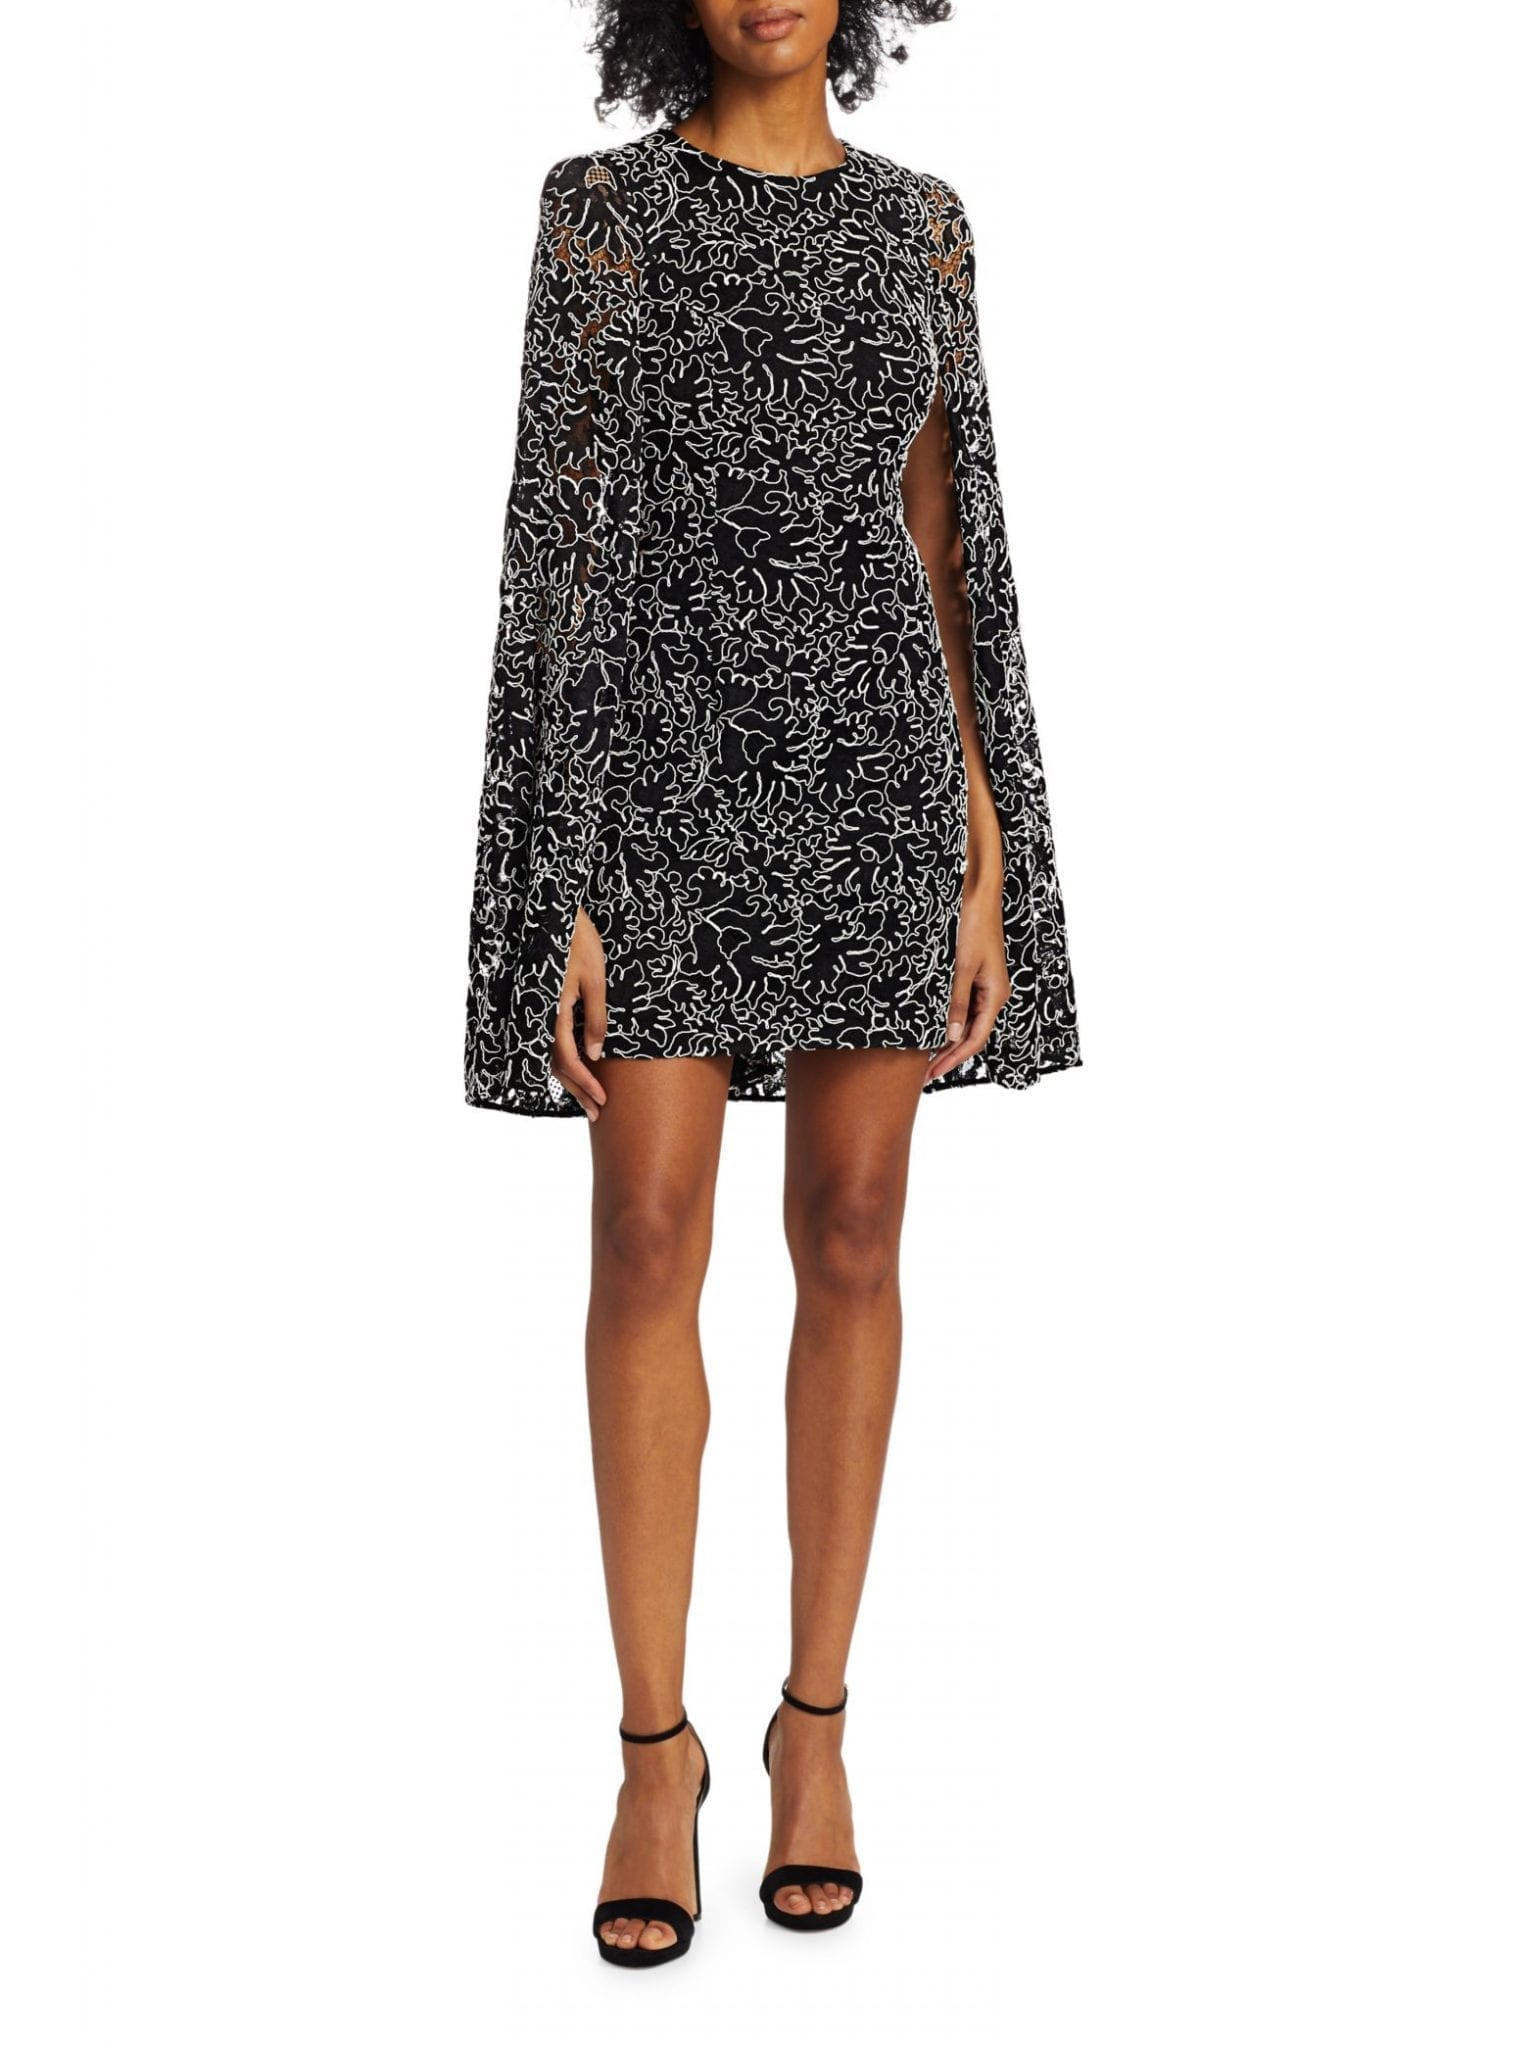 MICHAEL KORS COLLECTION Corded Lace Cape Dress